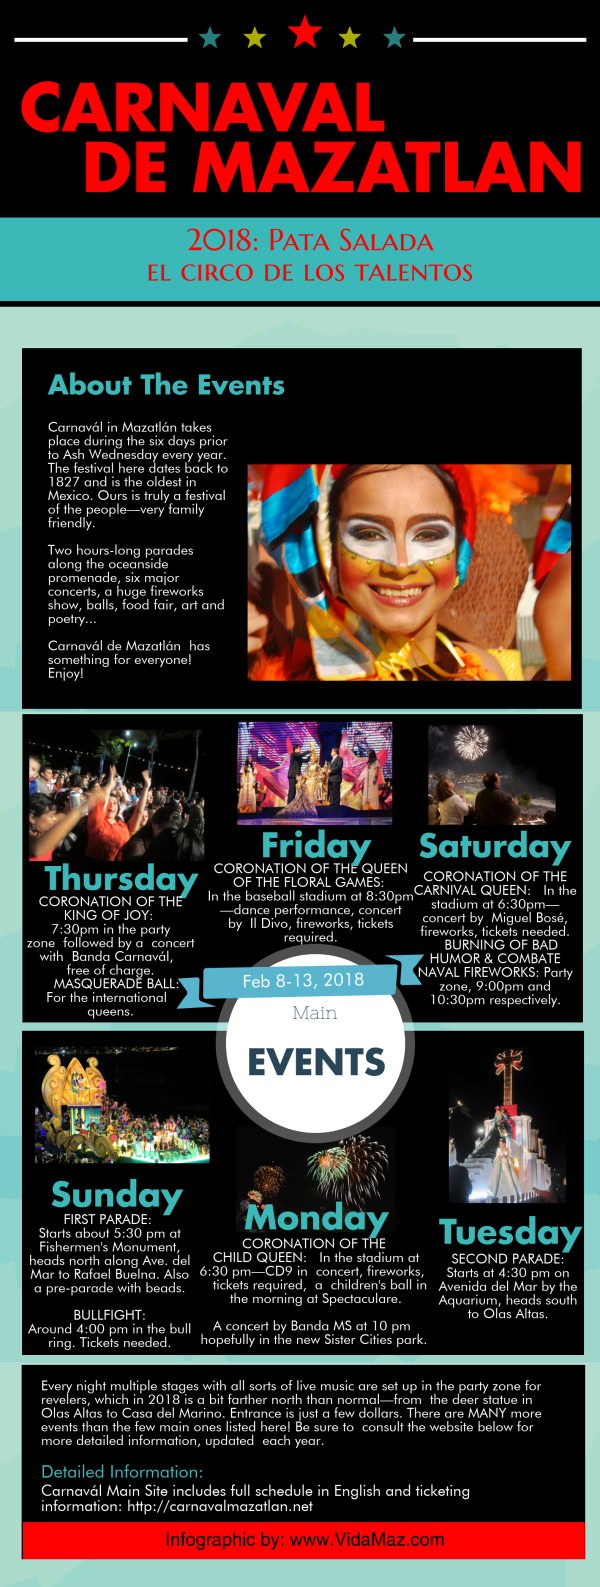 Carnaval2018 infographic2.png